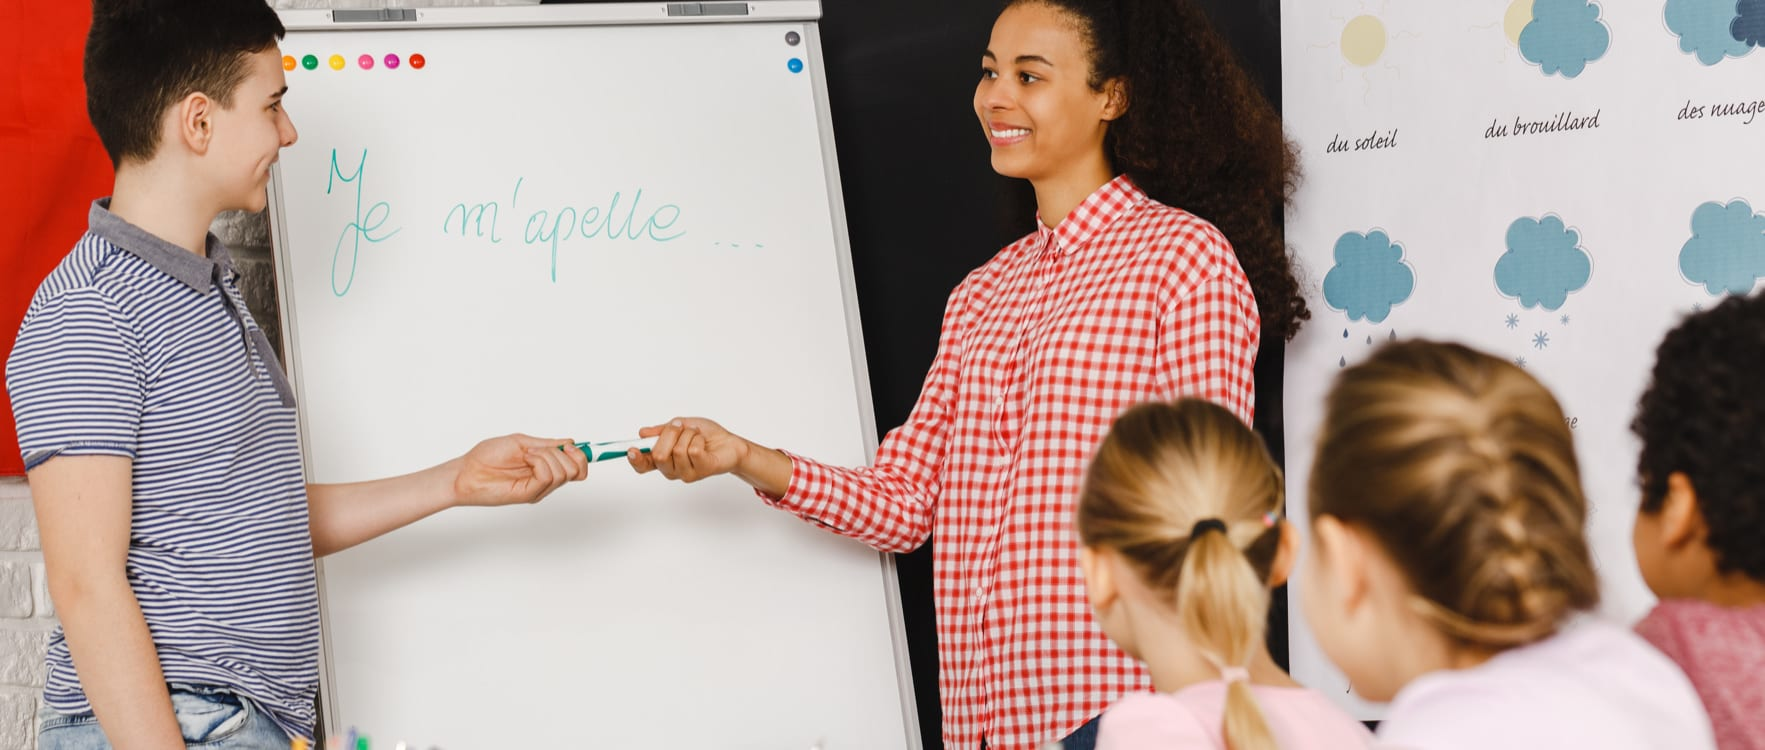 Woman teacher in front of a class handing a marker to one of her students next to a whiteboard with a written french word